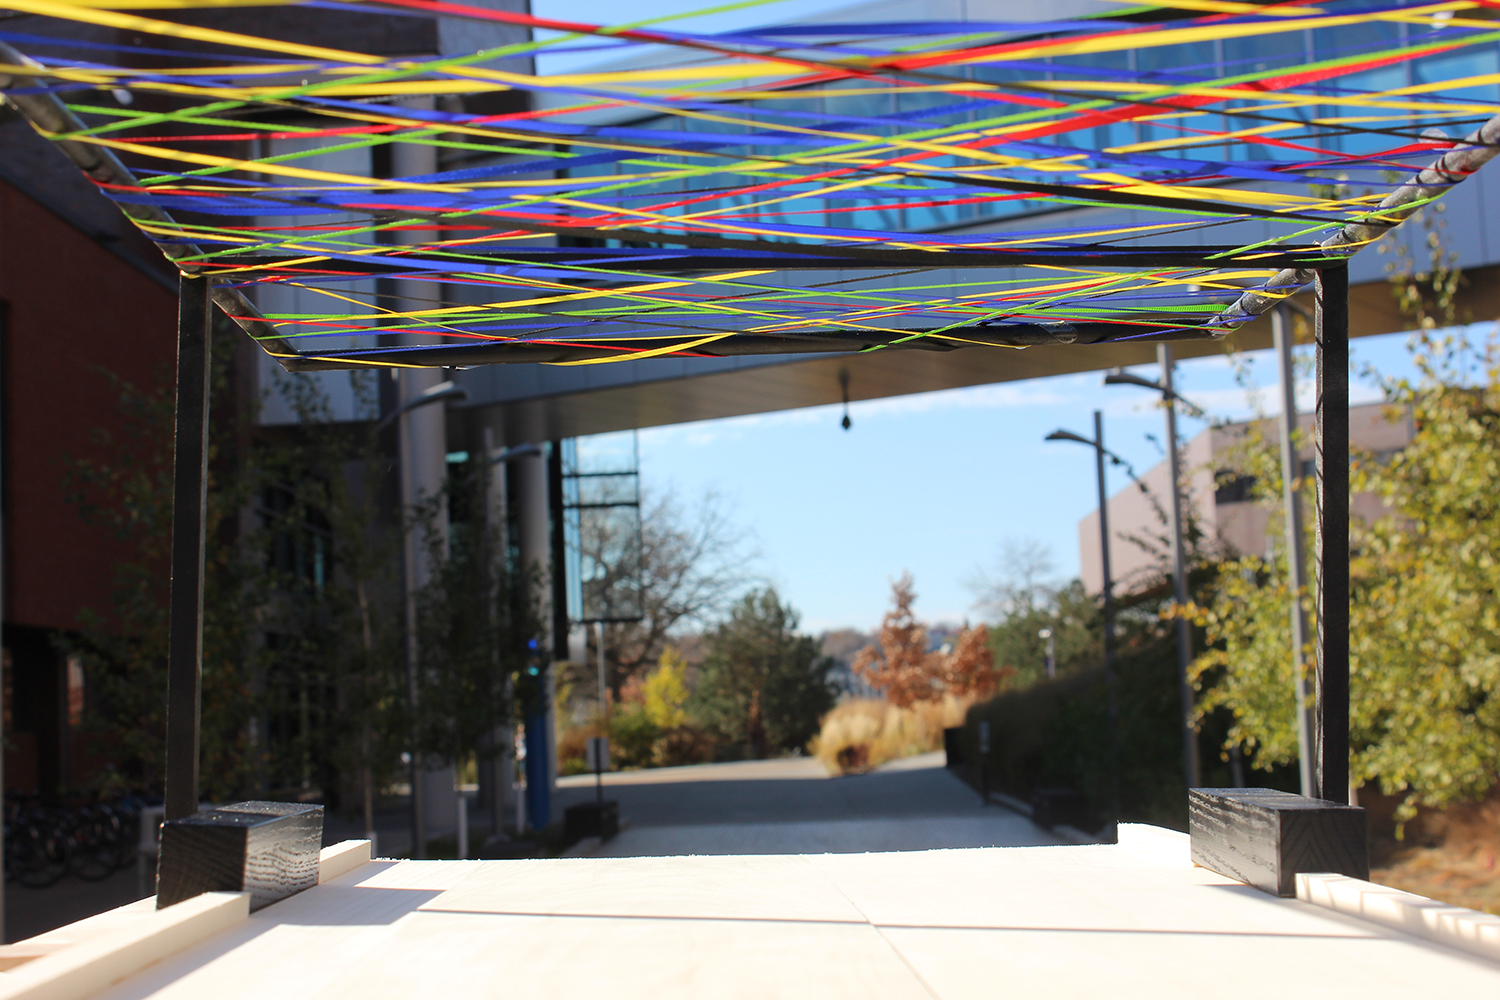 The structure will be built on the walkway outside of the Helland Center. (Photo: Kassidy Curry/City College News)